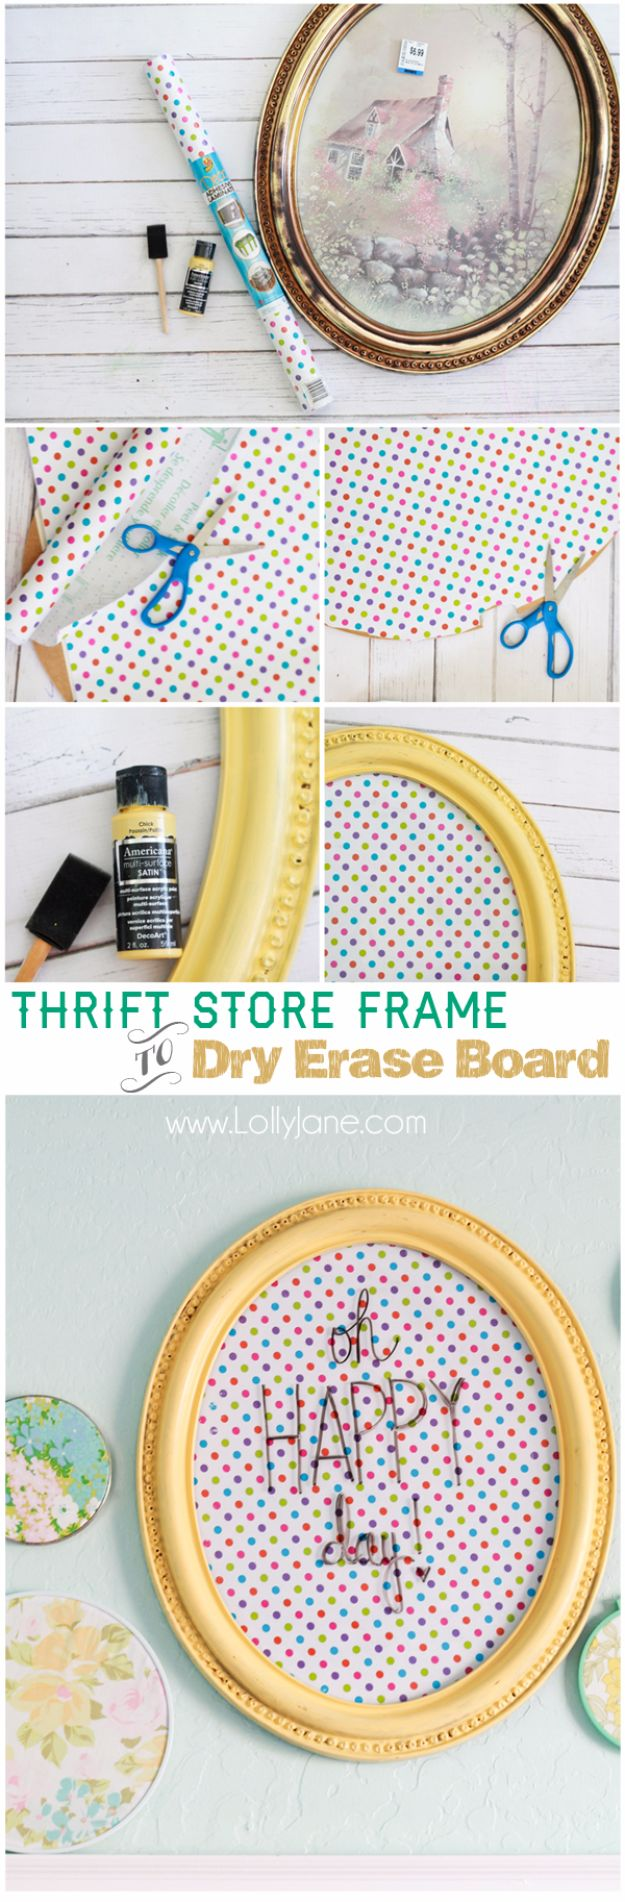 Thrift Store Crafts for Budget Friendly Low Cost DIY Christmas Gifts - Dollar Store Ideas for Gifts for Friends - Framed Polka Dot Dry Erase Board